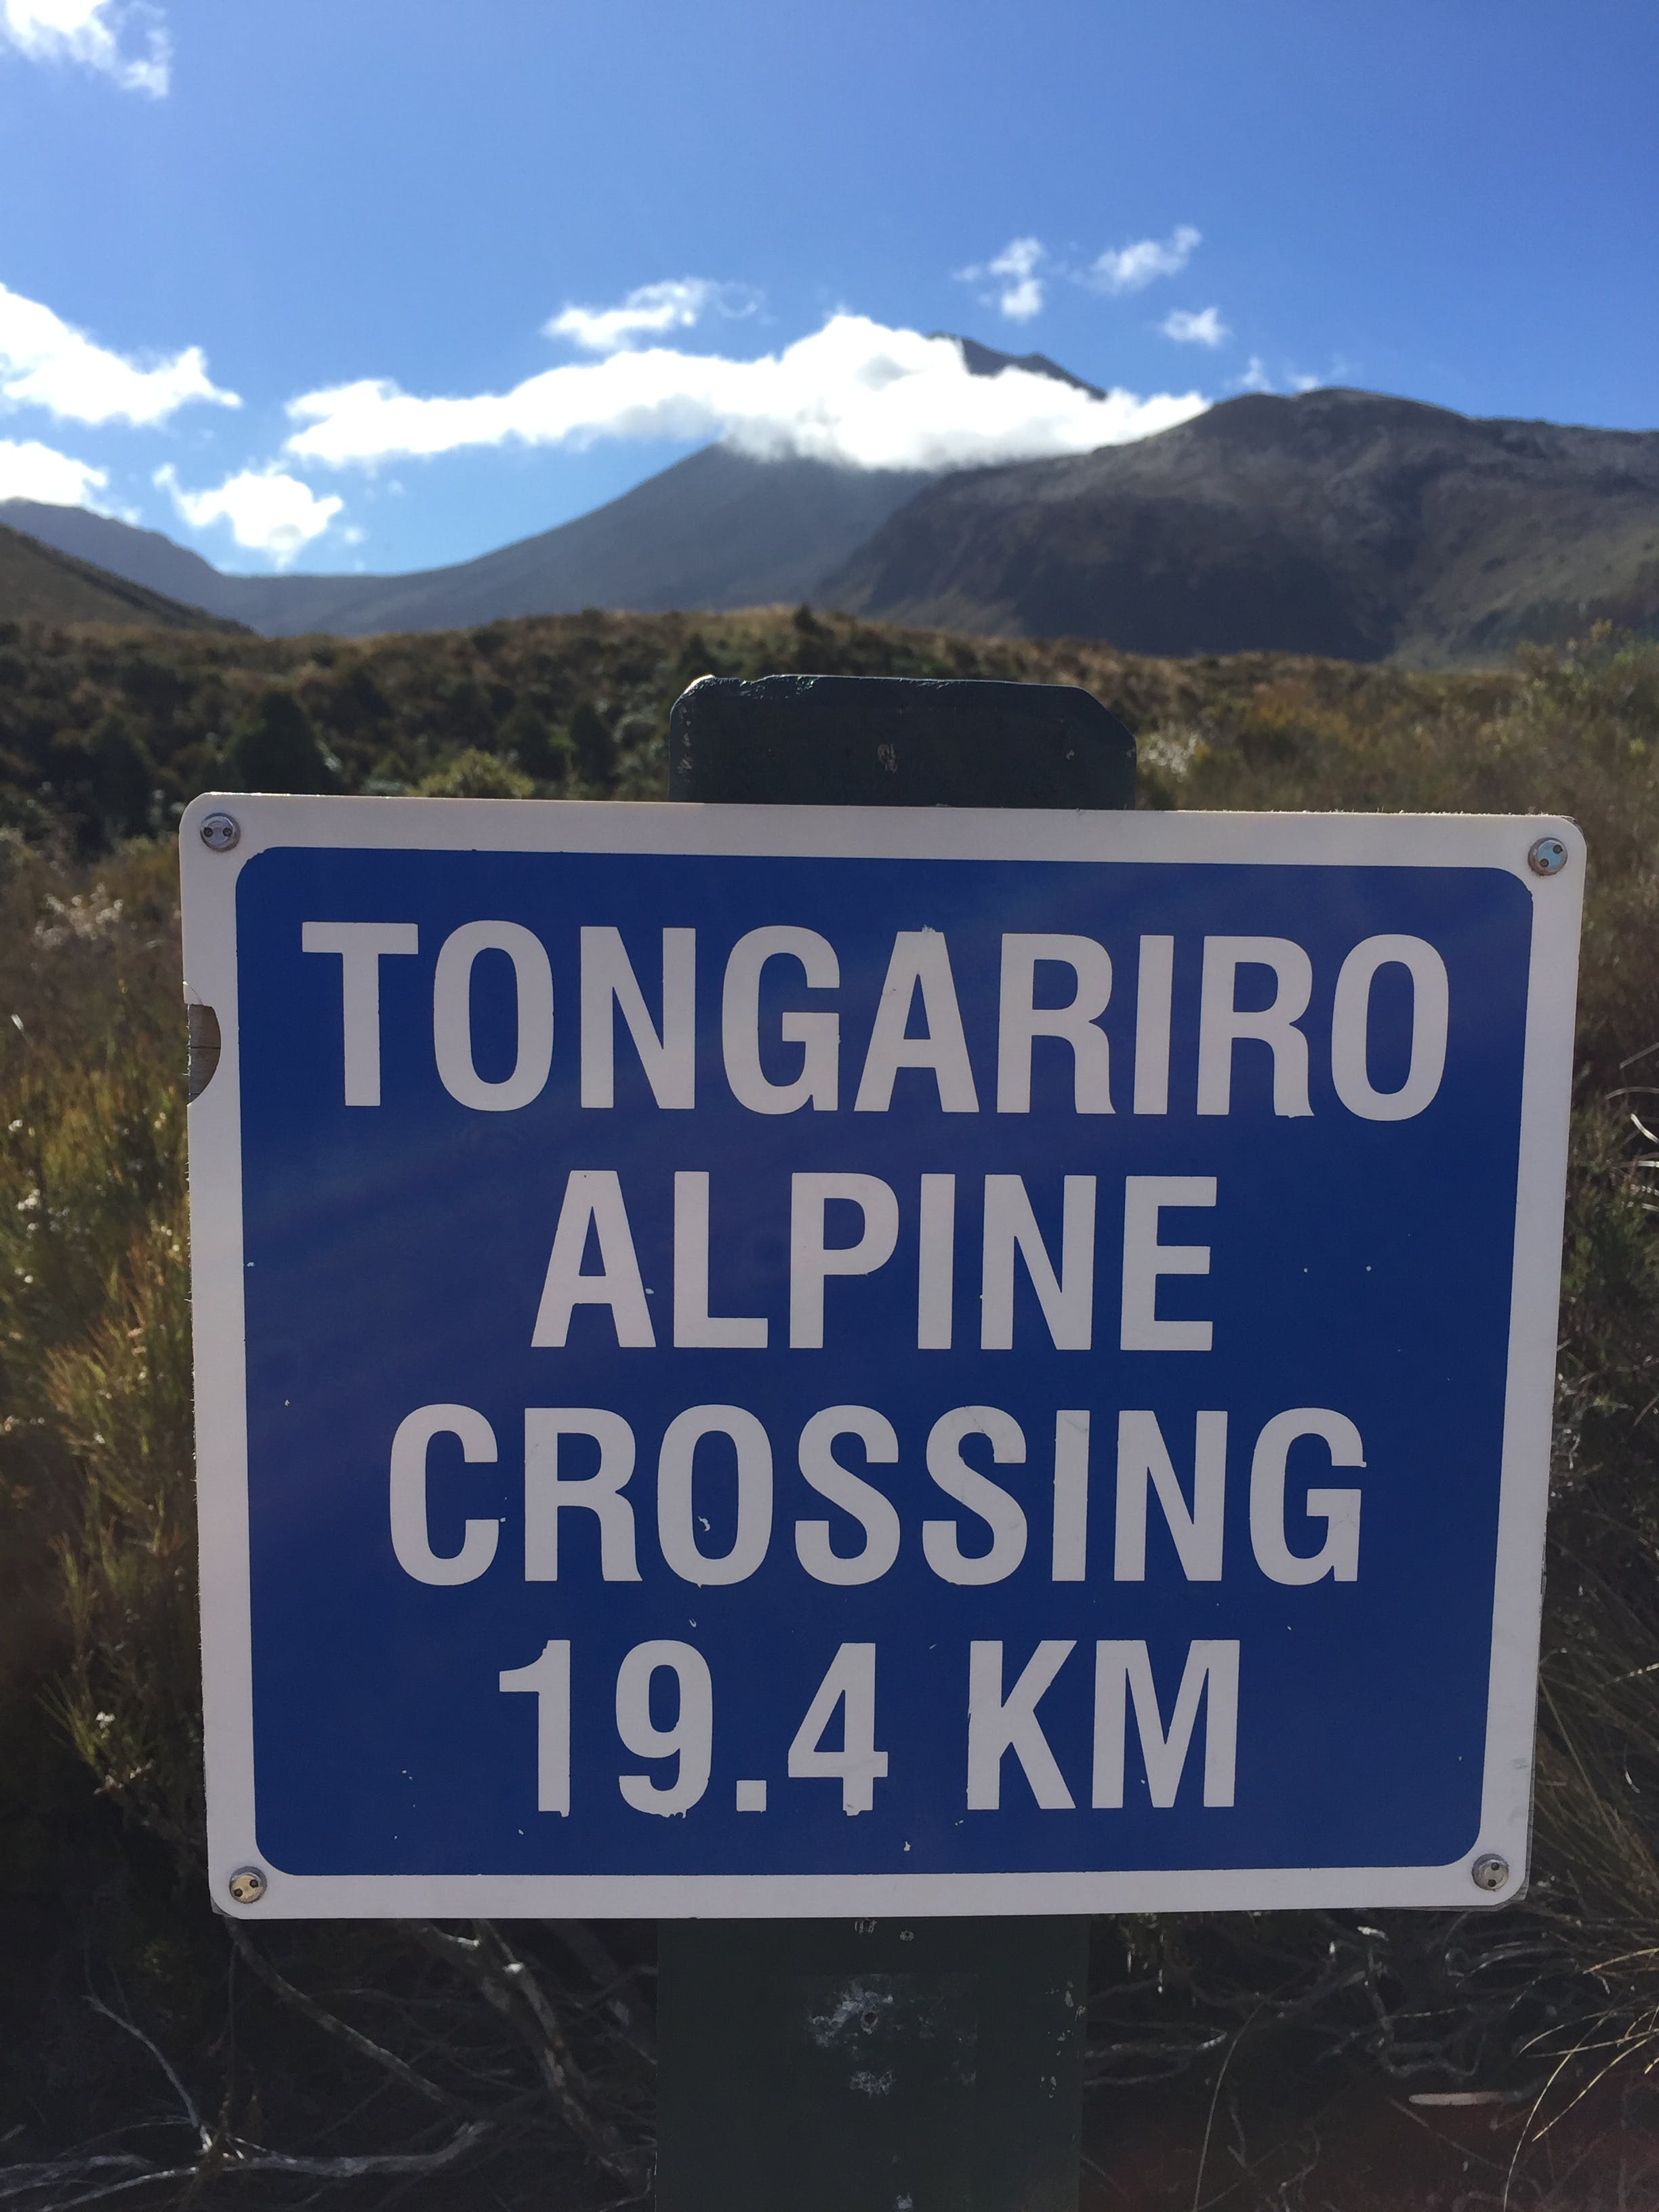 Just 19.4km to go - the start of the Tongariro Alpine Crossing.